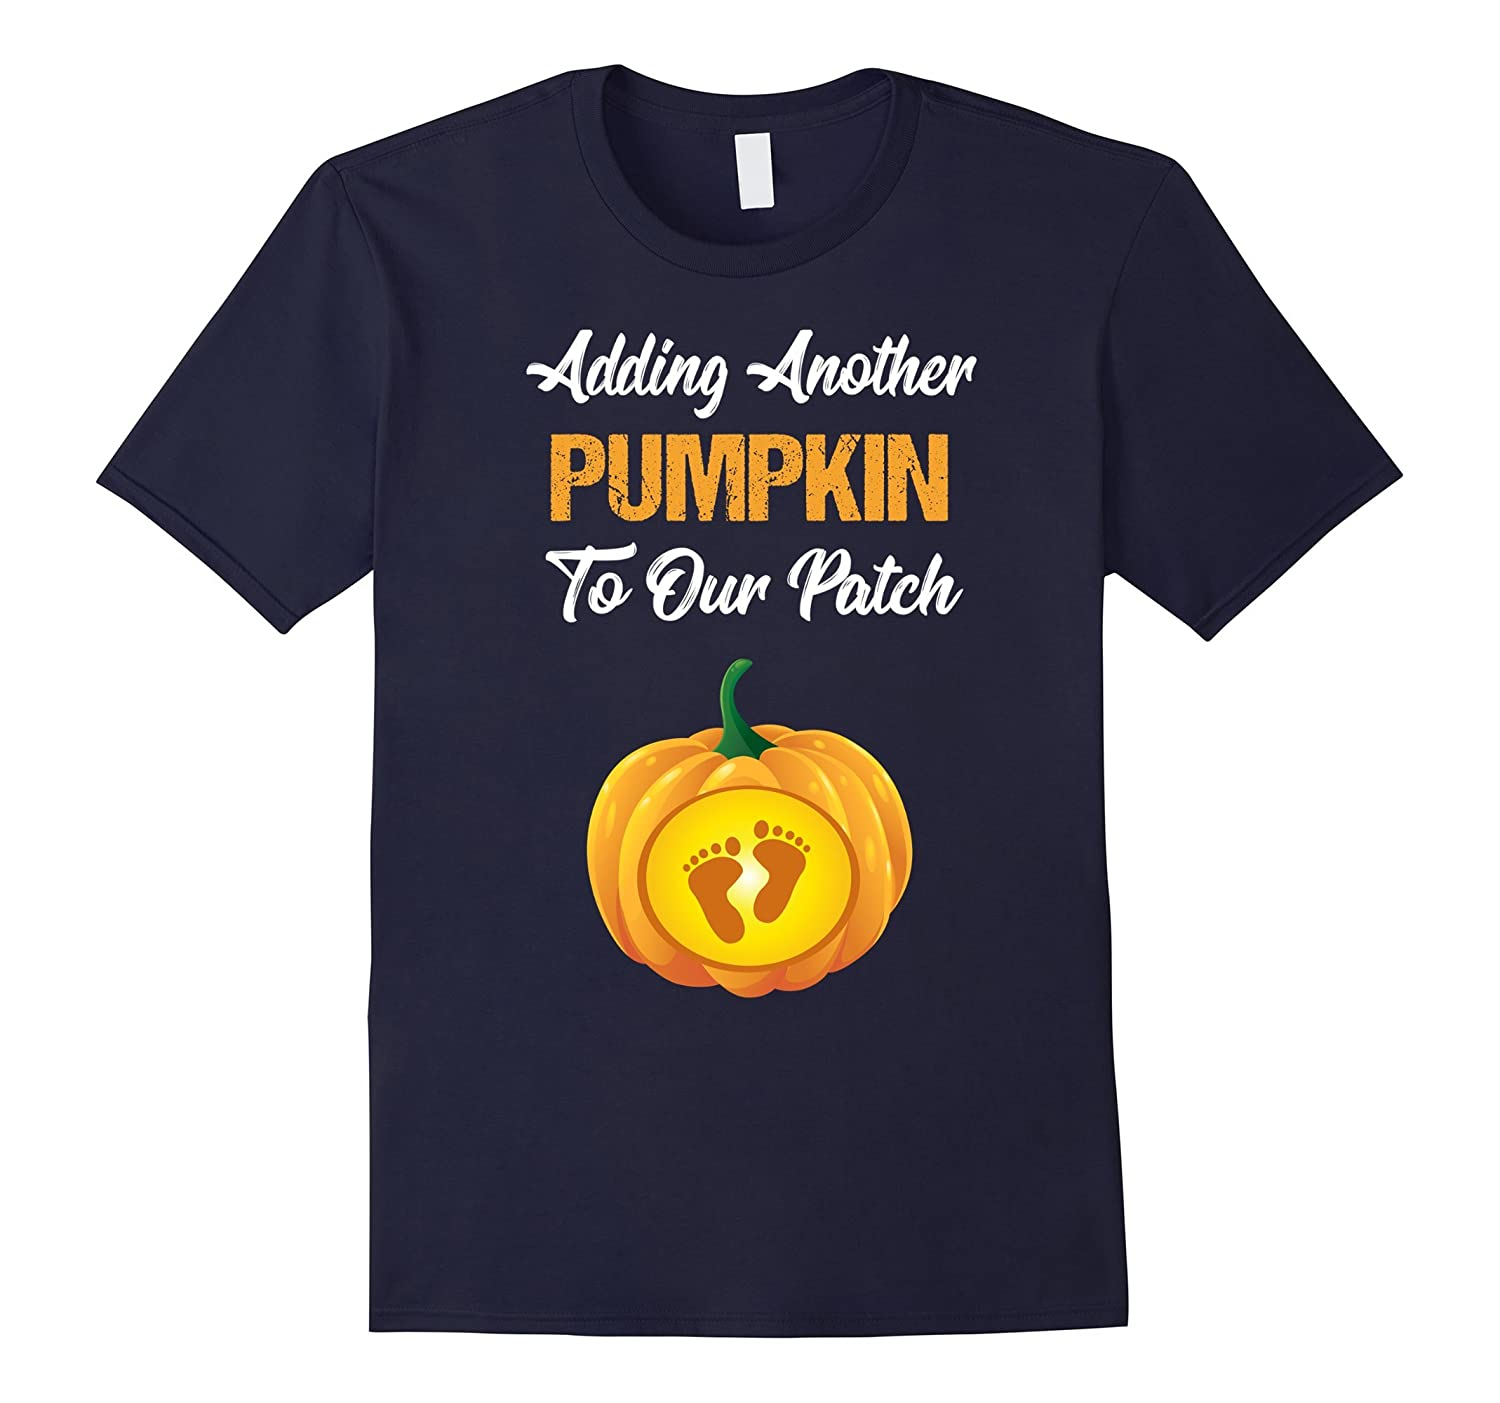 Adding A Pumpkin To Our Patch TShirt Maternity Halloween-T-Shirt